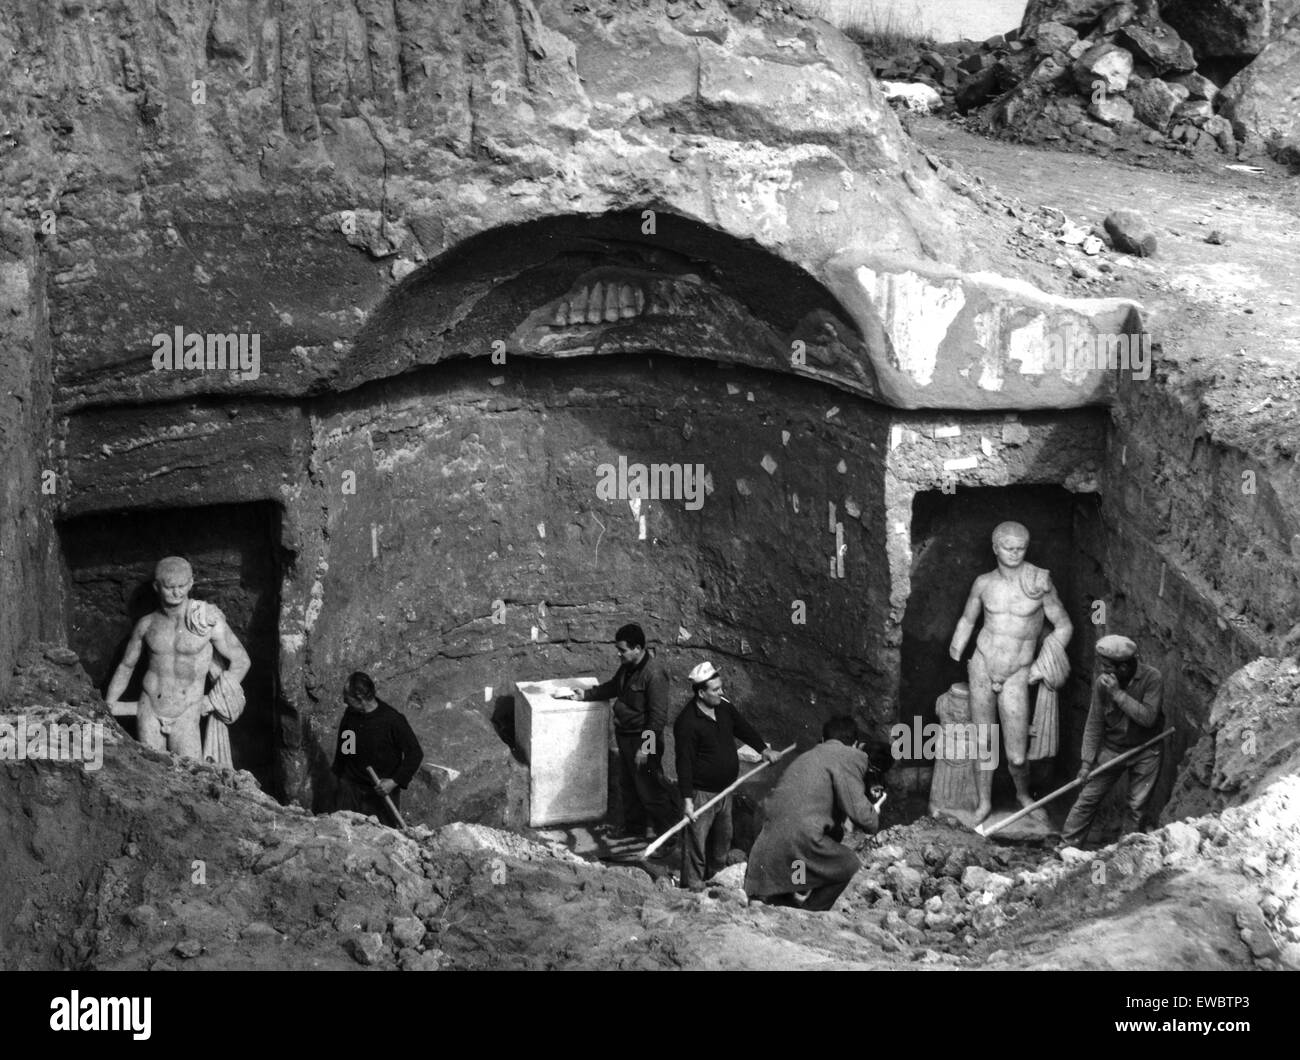 https://c8.alamy.com/comp/EWBTP3/archaeological-excavations-in-rome-for-the-discovery-of-a-roman-tomb1967-EWBTP3.jpg